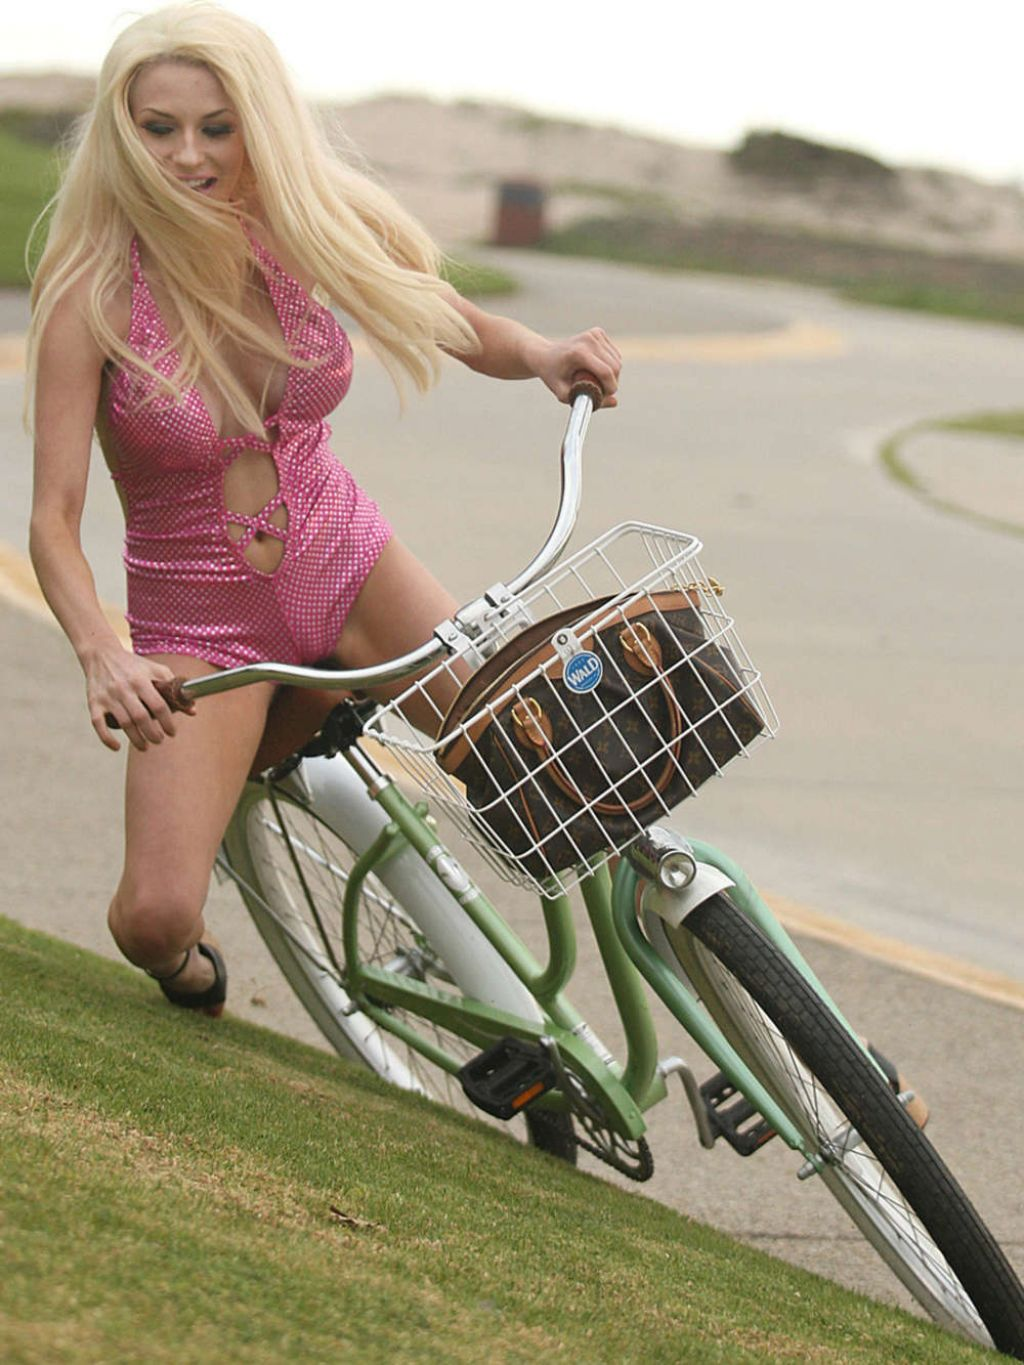 Victoria Falls Hd Wallpaper Courtney Stodden In Swimsuit Falls Off Her Bike